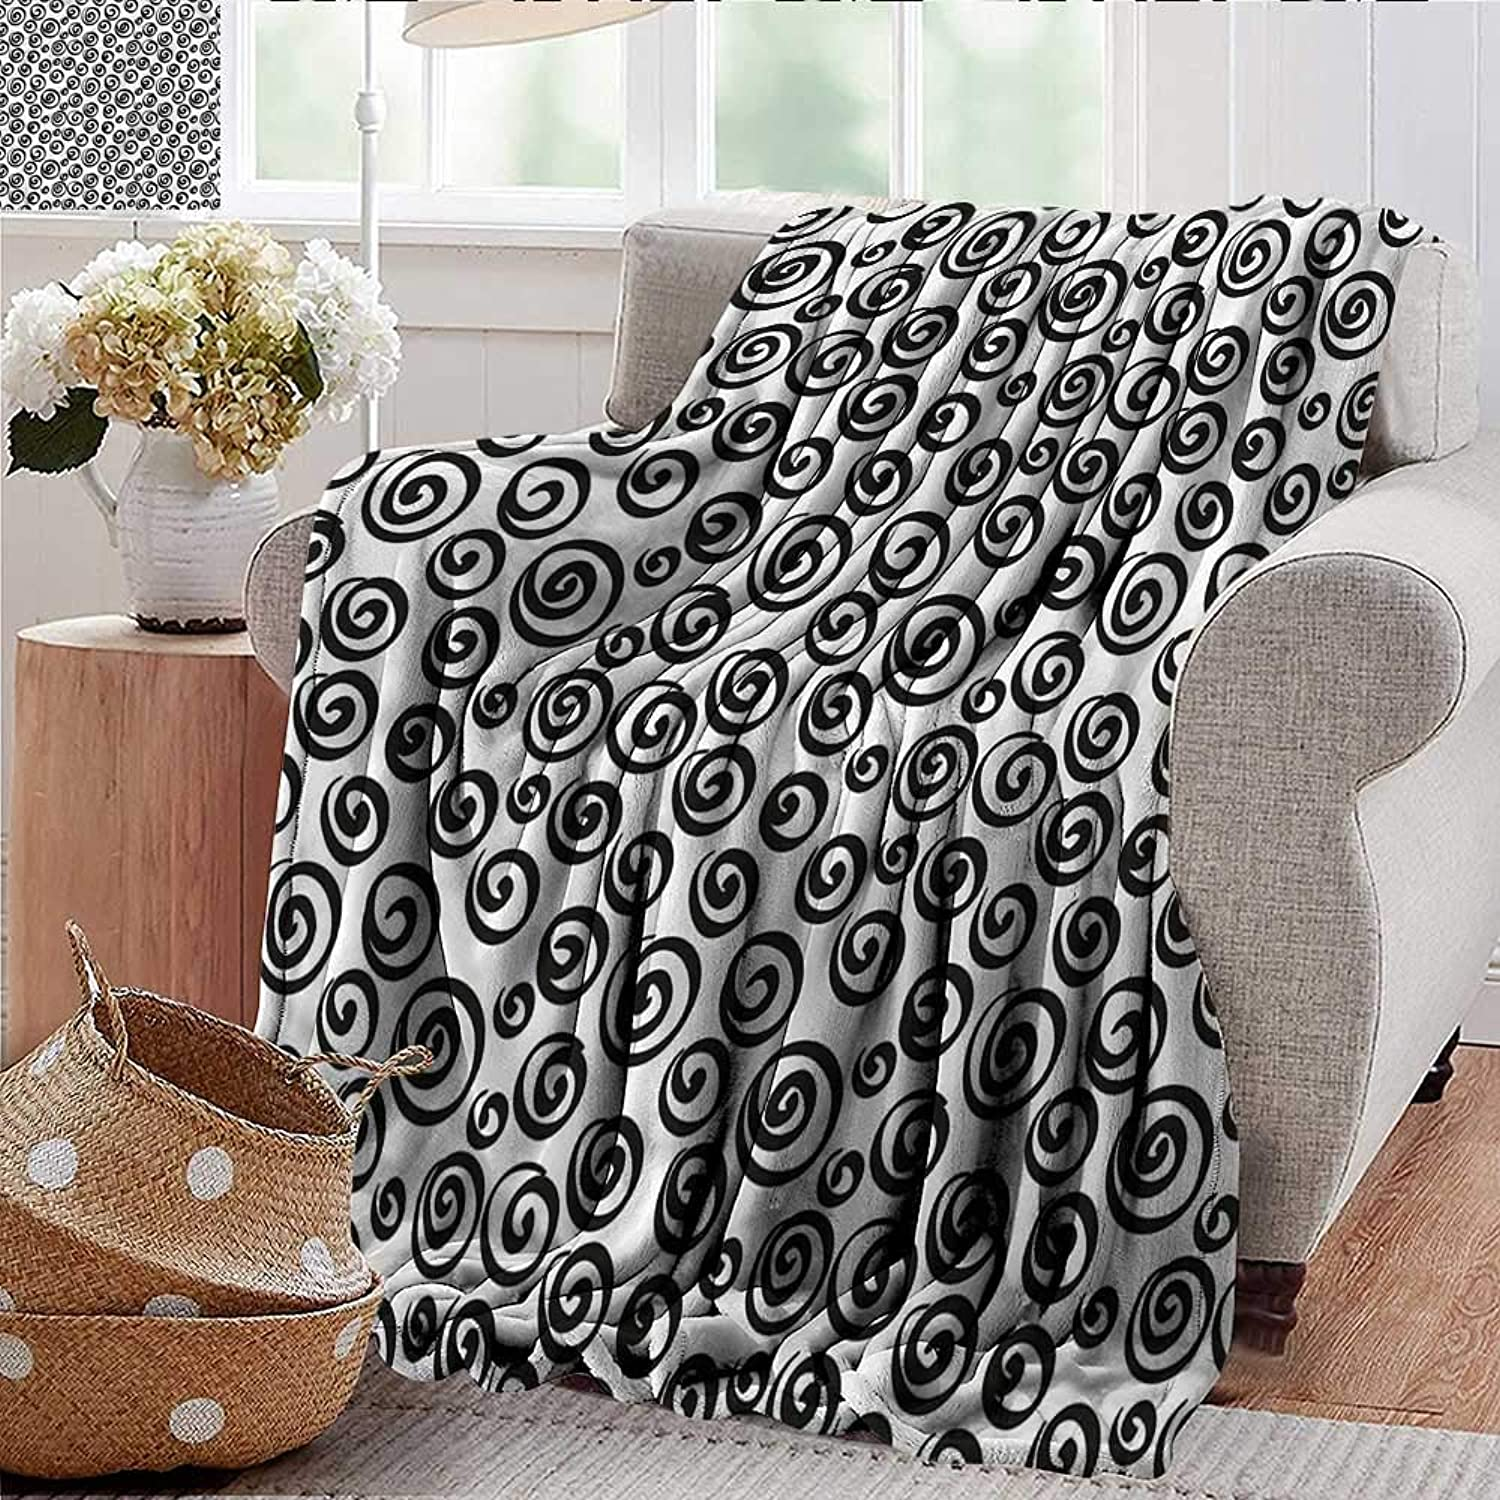 Xaviera Doherty Summer Blanket Abstract,Minimalist Spiral Forms Weighted Blanket for Adults Kids, Better Deeper Sleep 35 x60